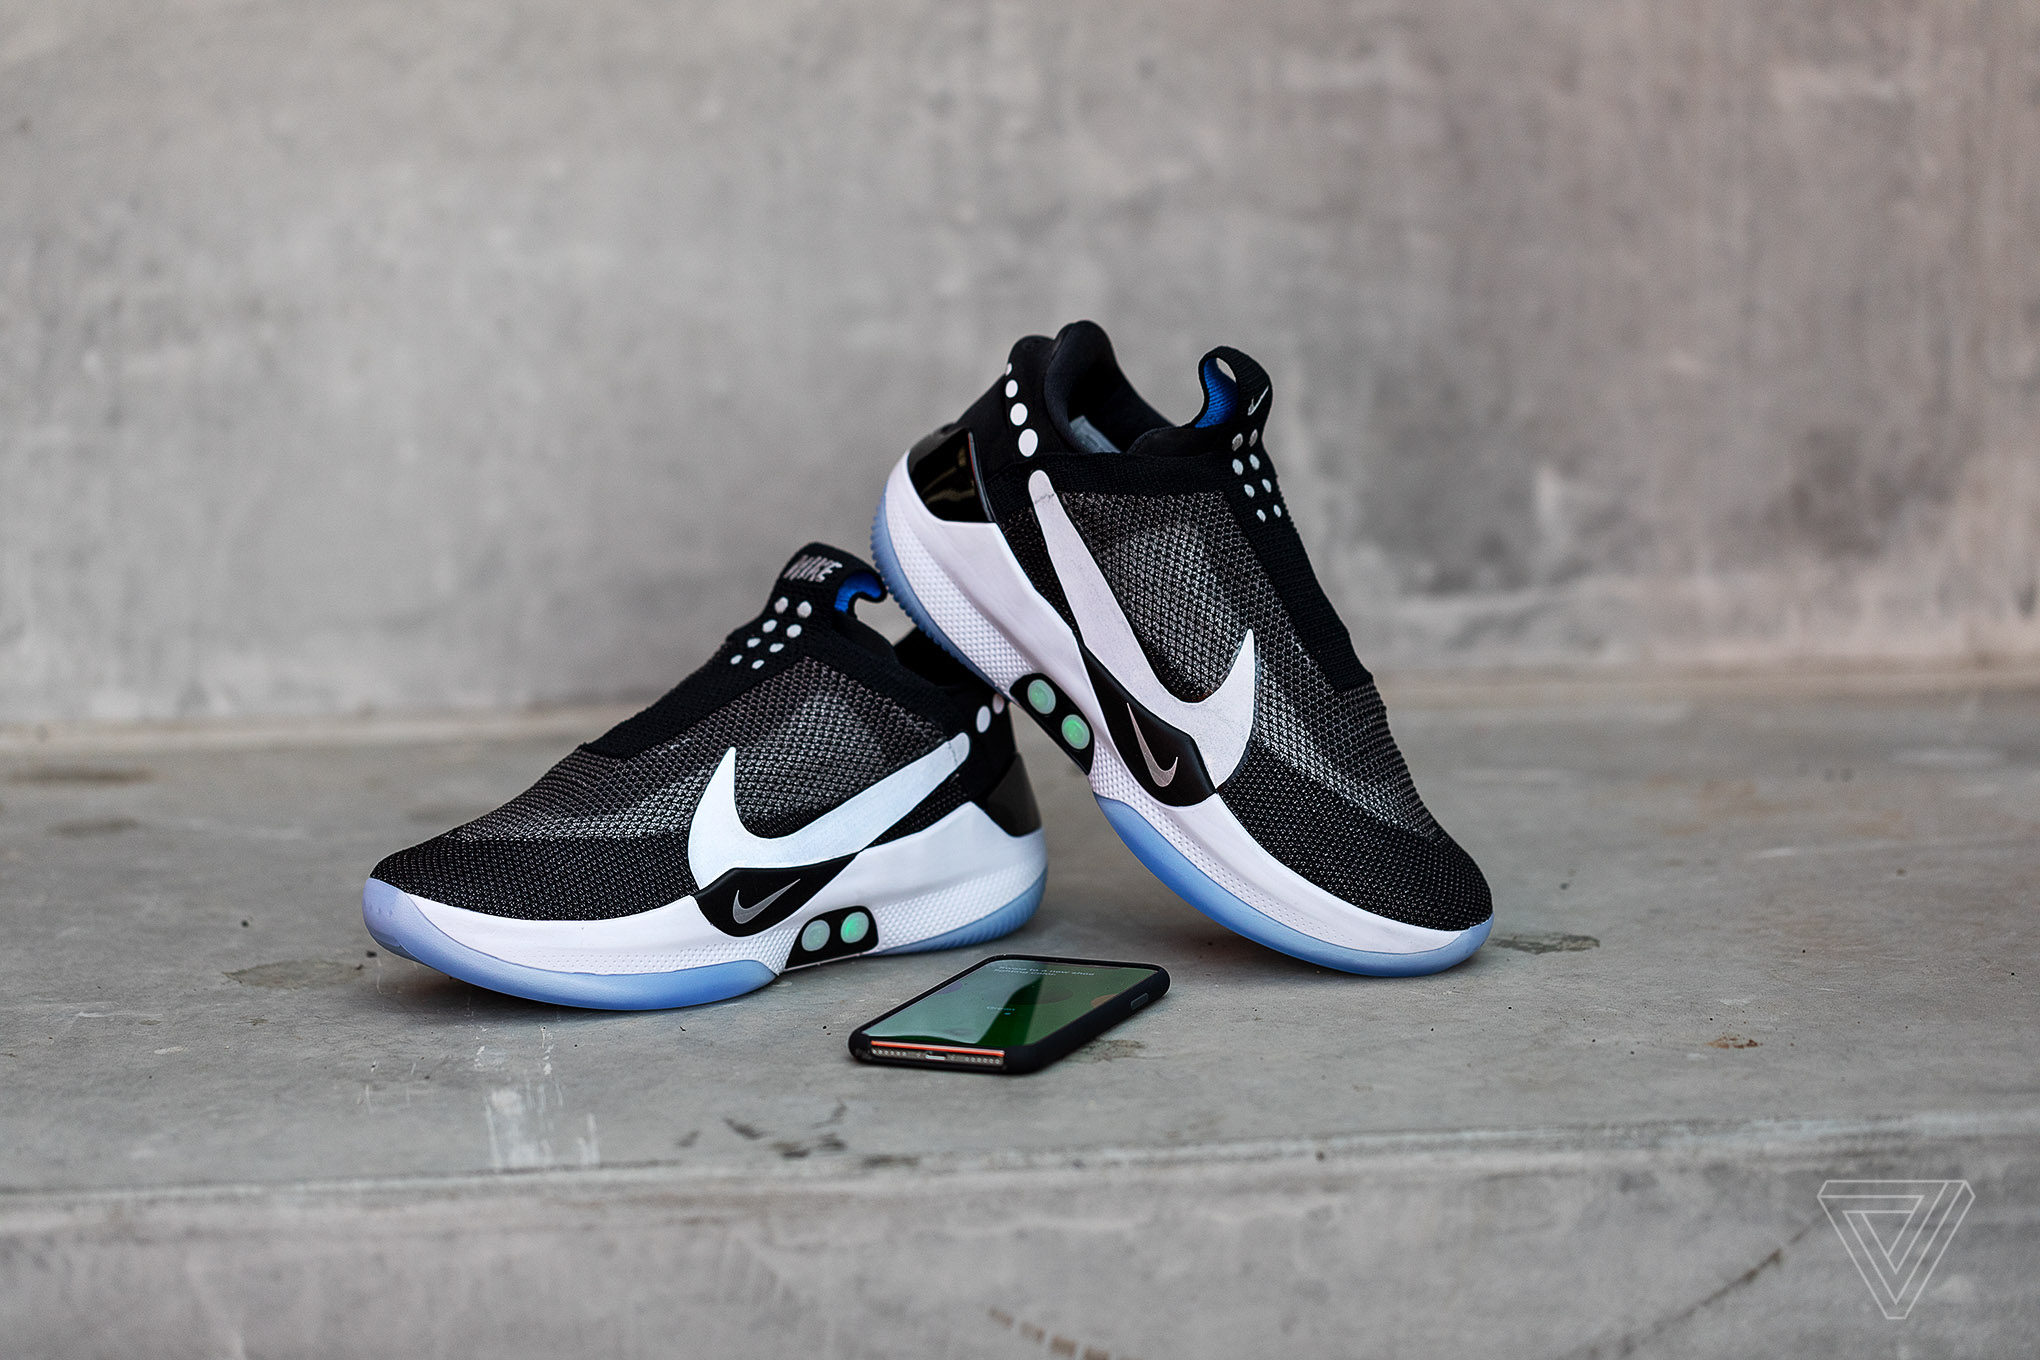 d28f9aa3b618 Nike s Adapt BB self-lacing sneakers let you tie your shoes from an ...